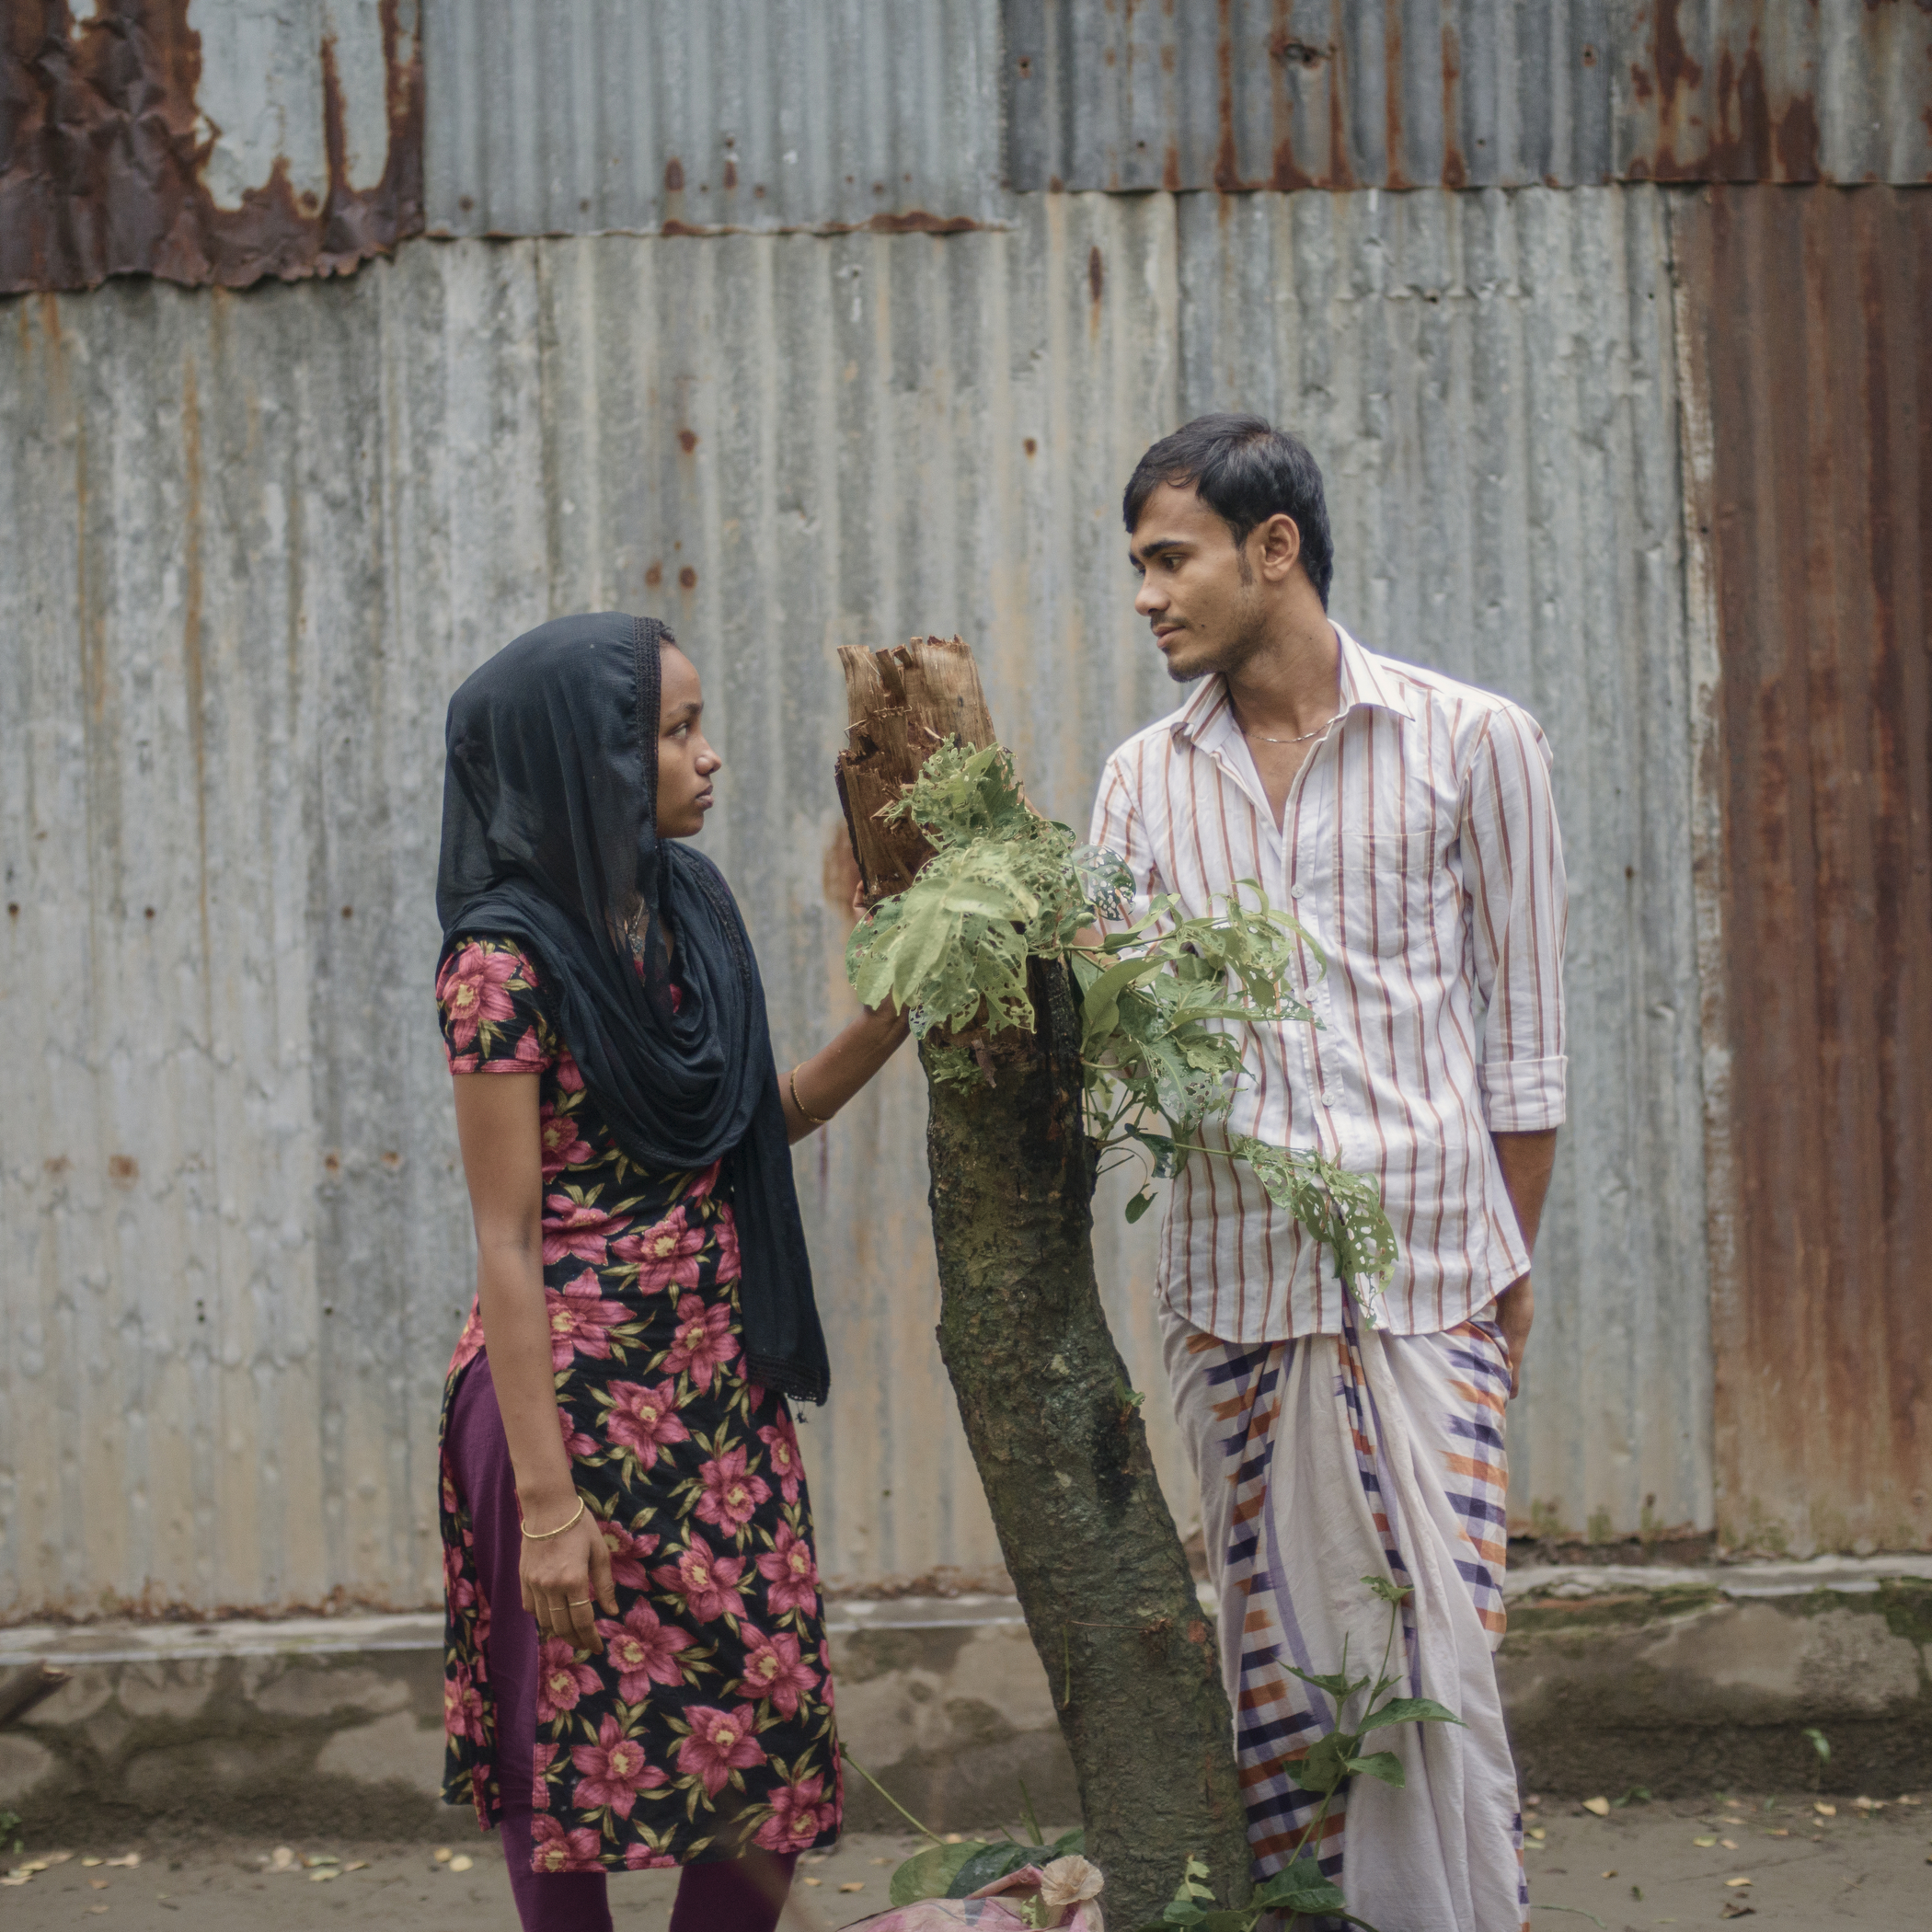 The unconditional love Belayed Hossain has for his wife Rabeya Begum is helping her extensively to heal from her emotional trauma after the collapse